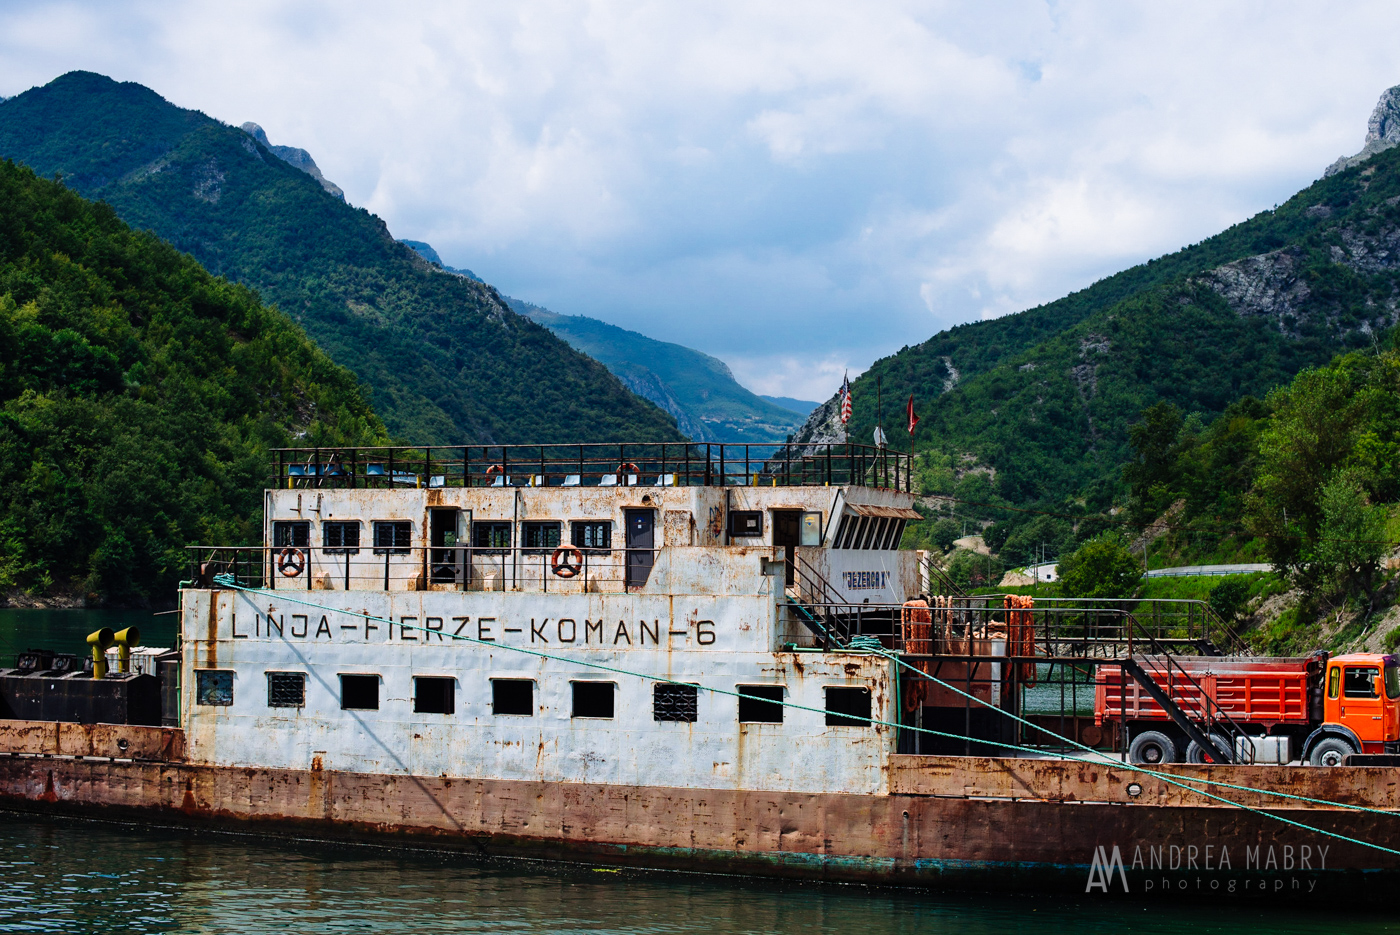 The old ferry, denoting its stops: Linja, Fierze, Koman.